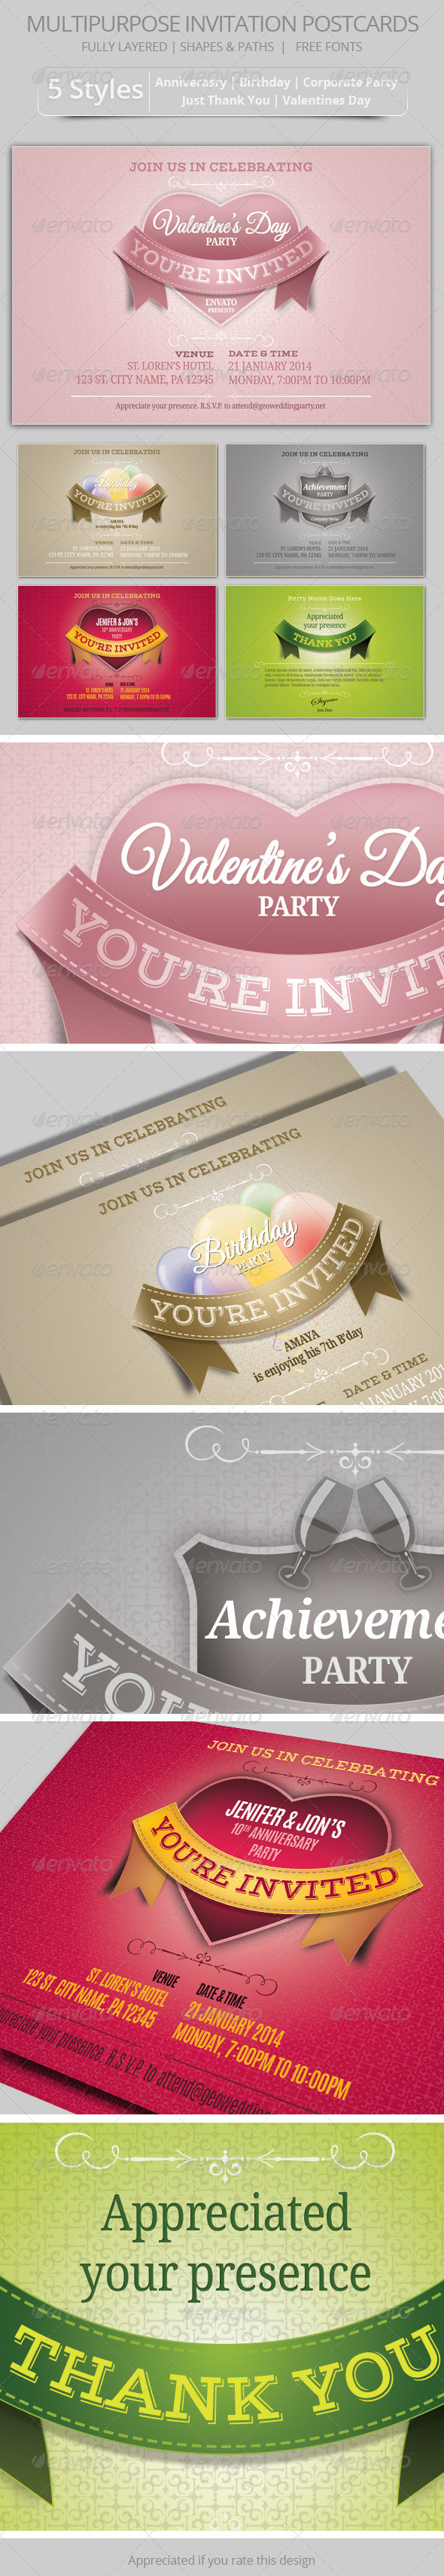 Multipurpose Invitation Postcards - Invitations Cards & Invites